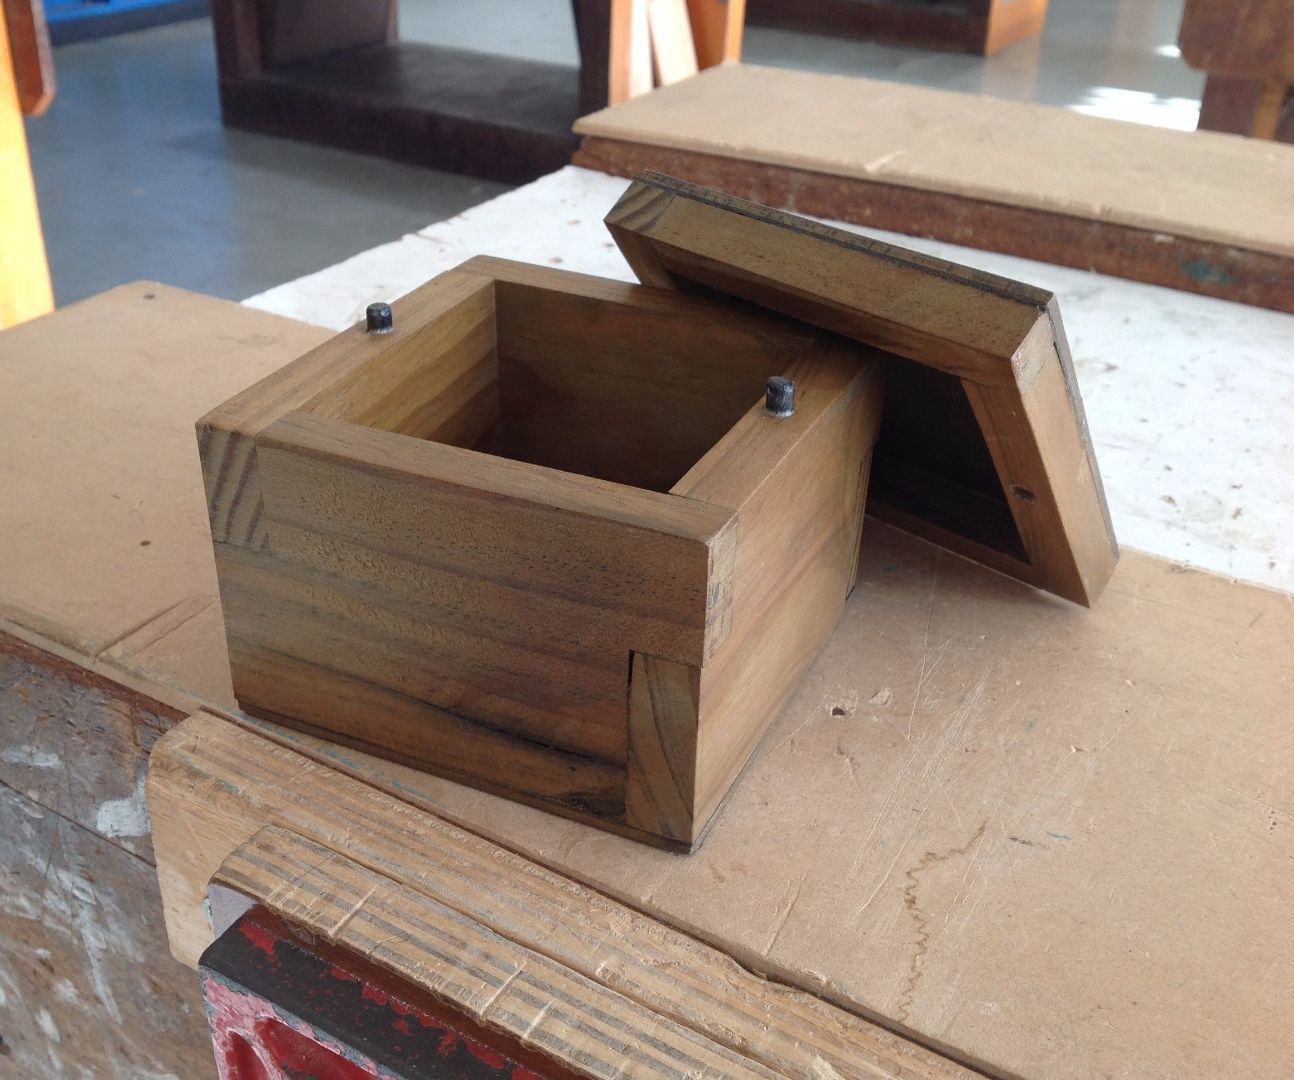 Small Wooden Box Small Wooden Boxes Wooden Box Diy Wooden Boxes